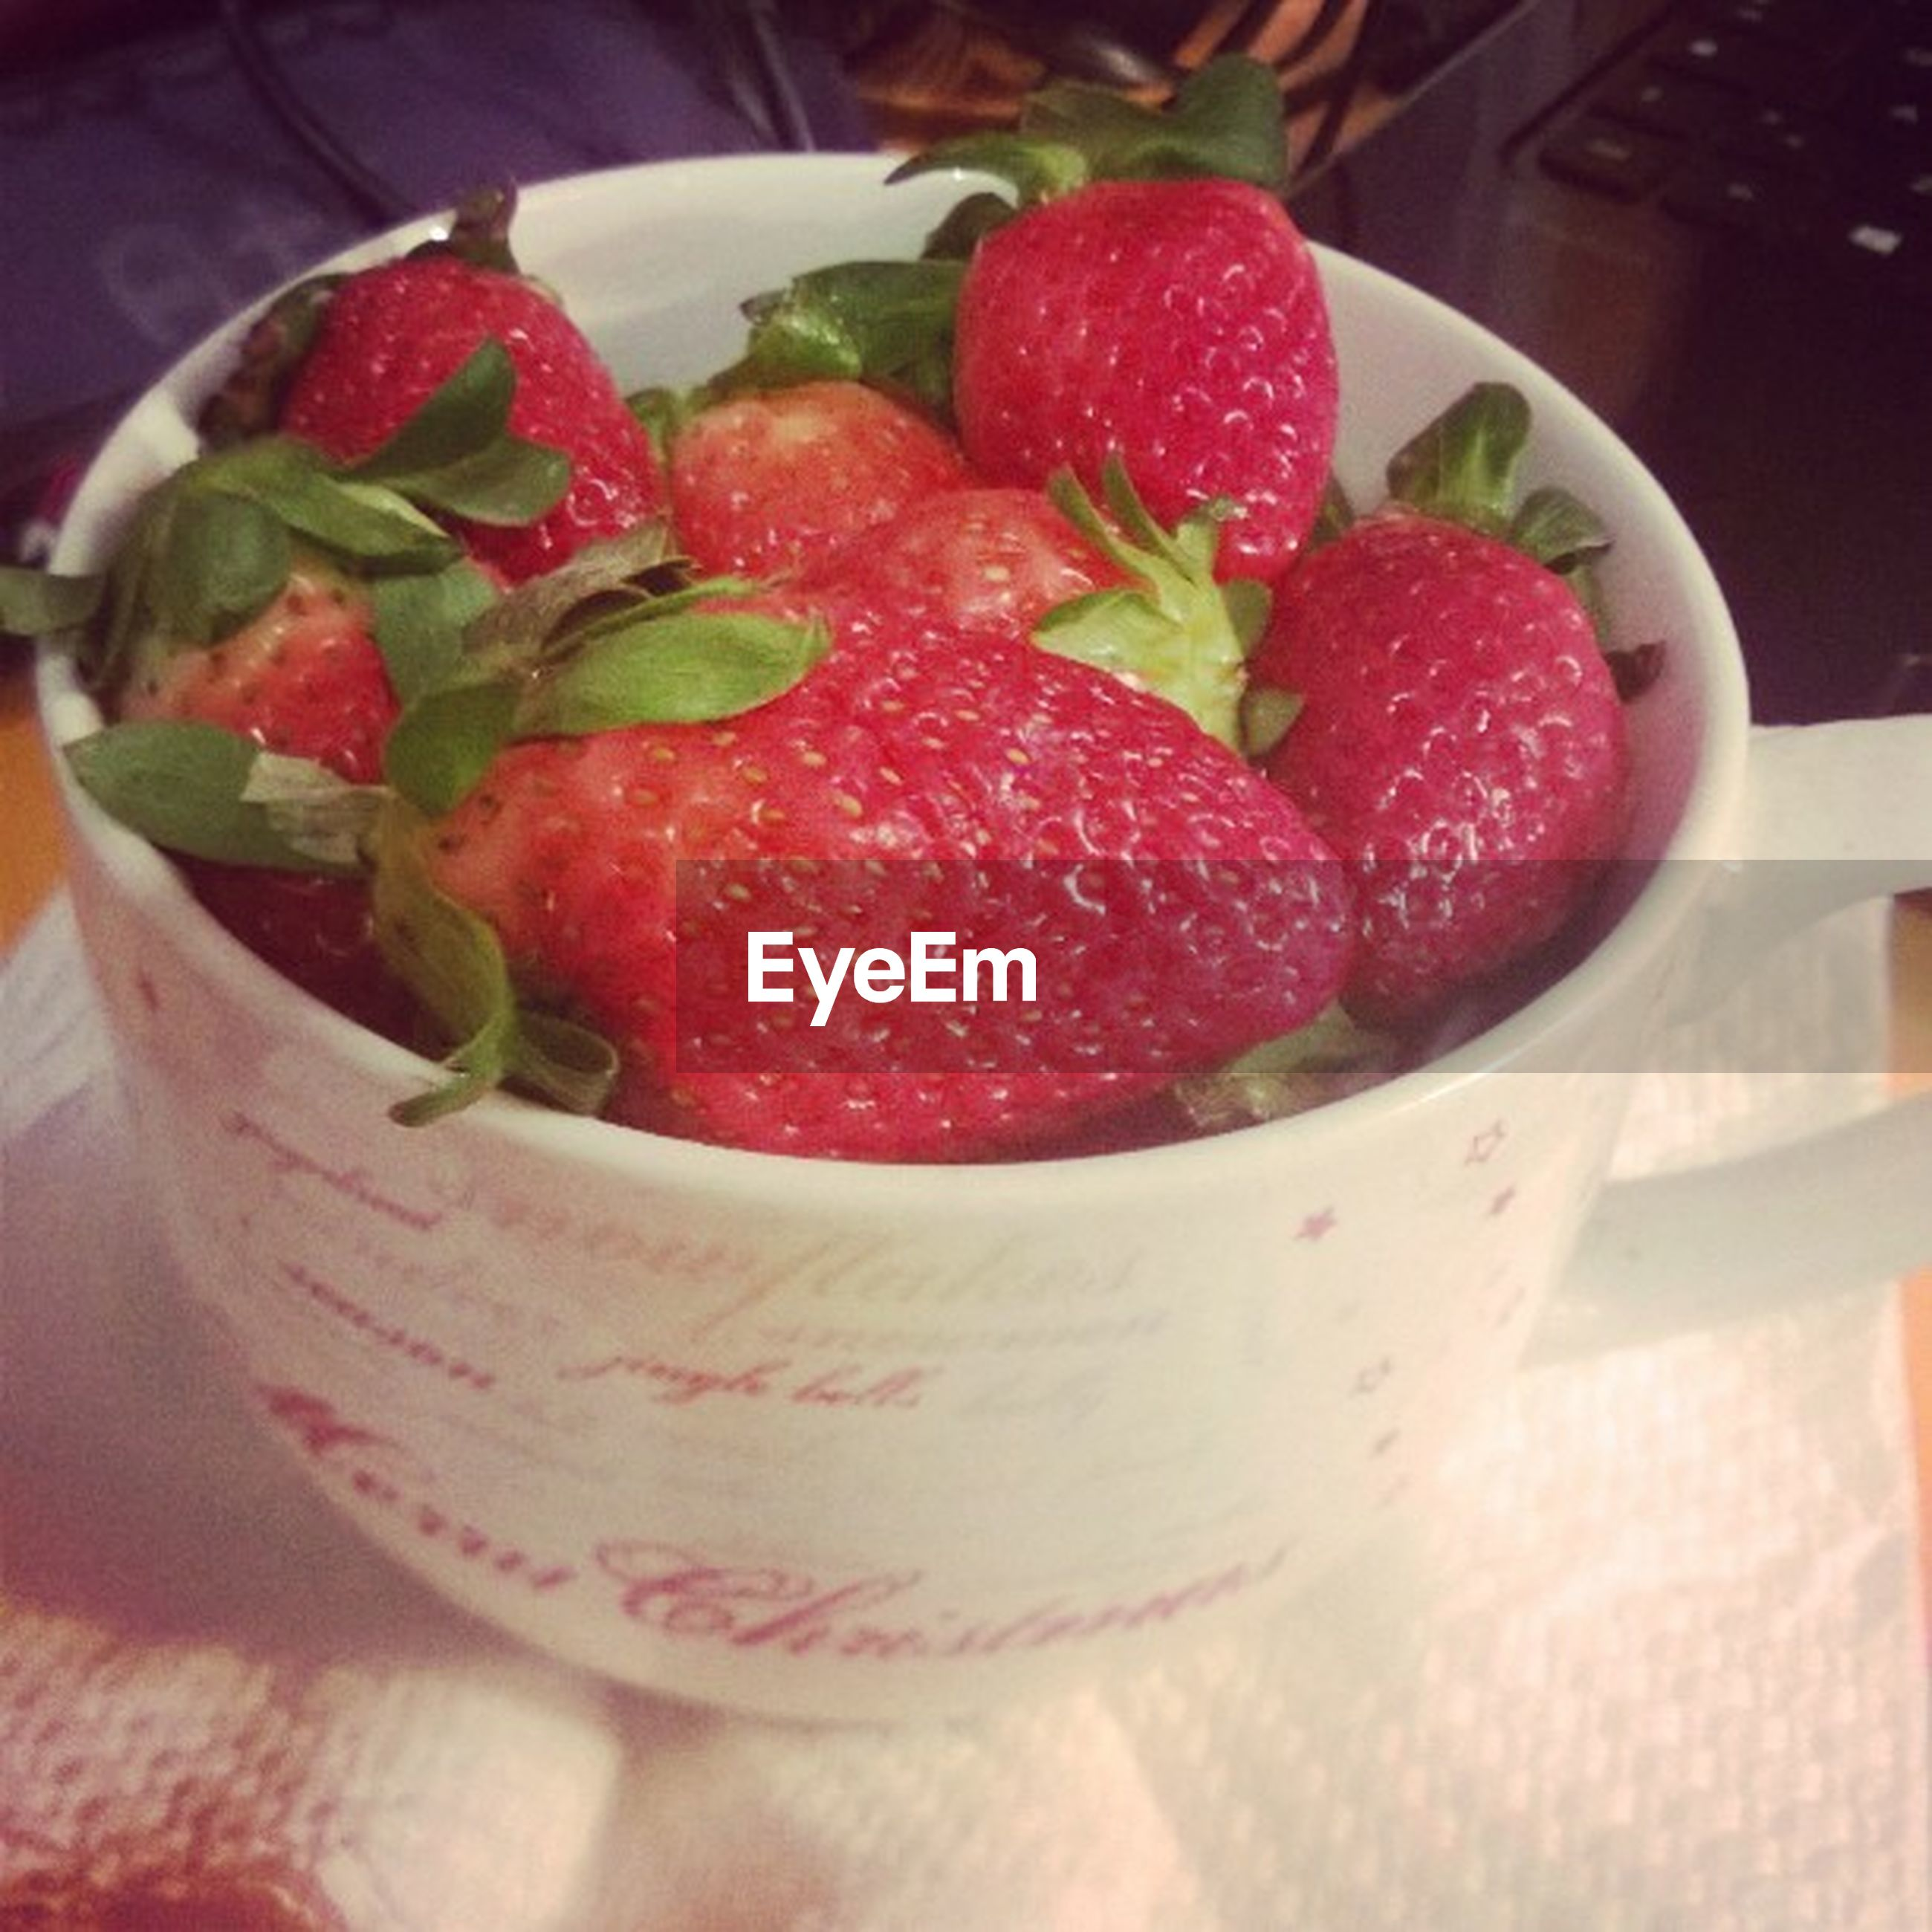 food and drink, food, fruit, freshness, strawberry, indoors, red, healthy eating, close-up, still life, berry fruit, sweet food, raspberry, table, ready-to-eat, bowl, juicy, indulgence, ripe, plate